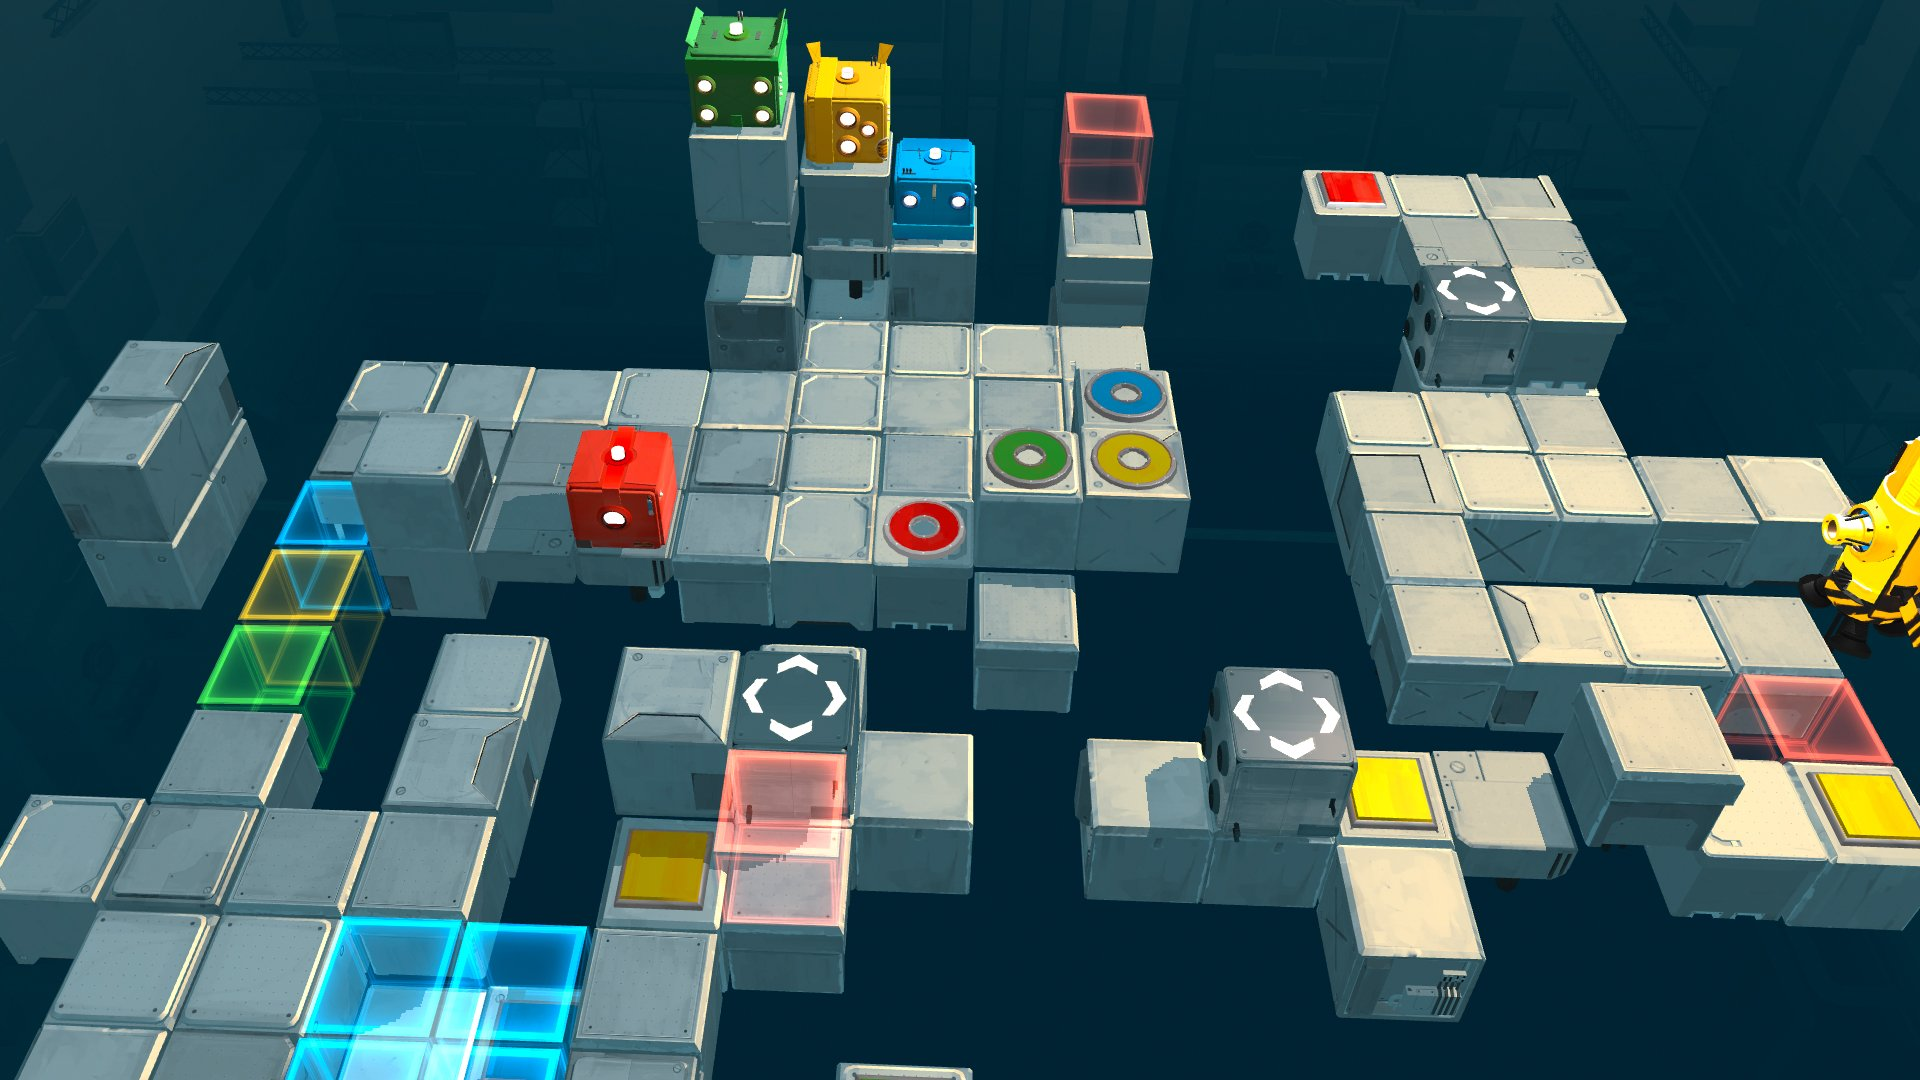 Sadistic co-op puzzle game Death Squared coming to PS4 too